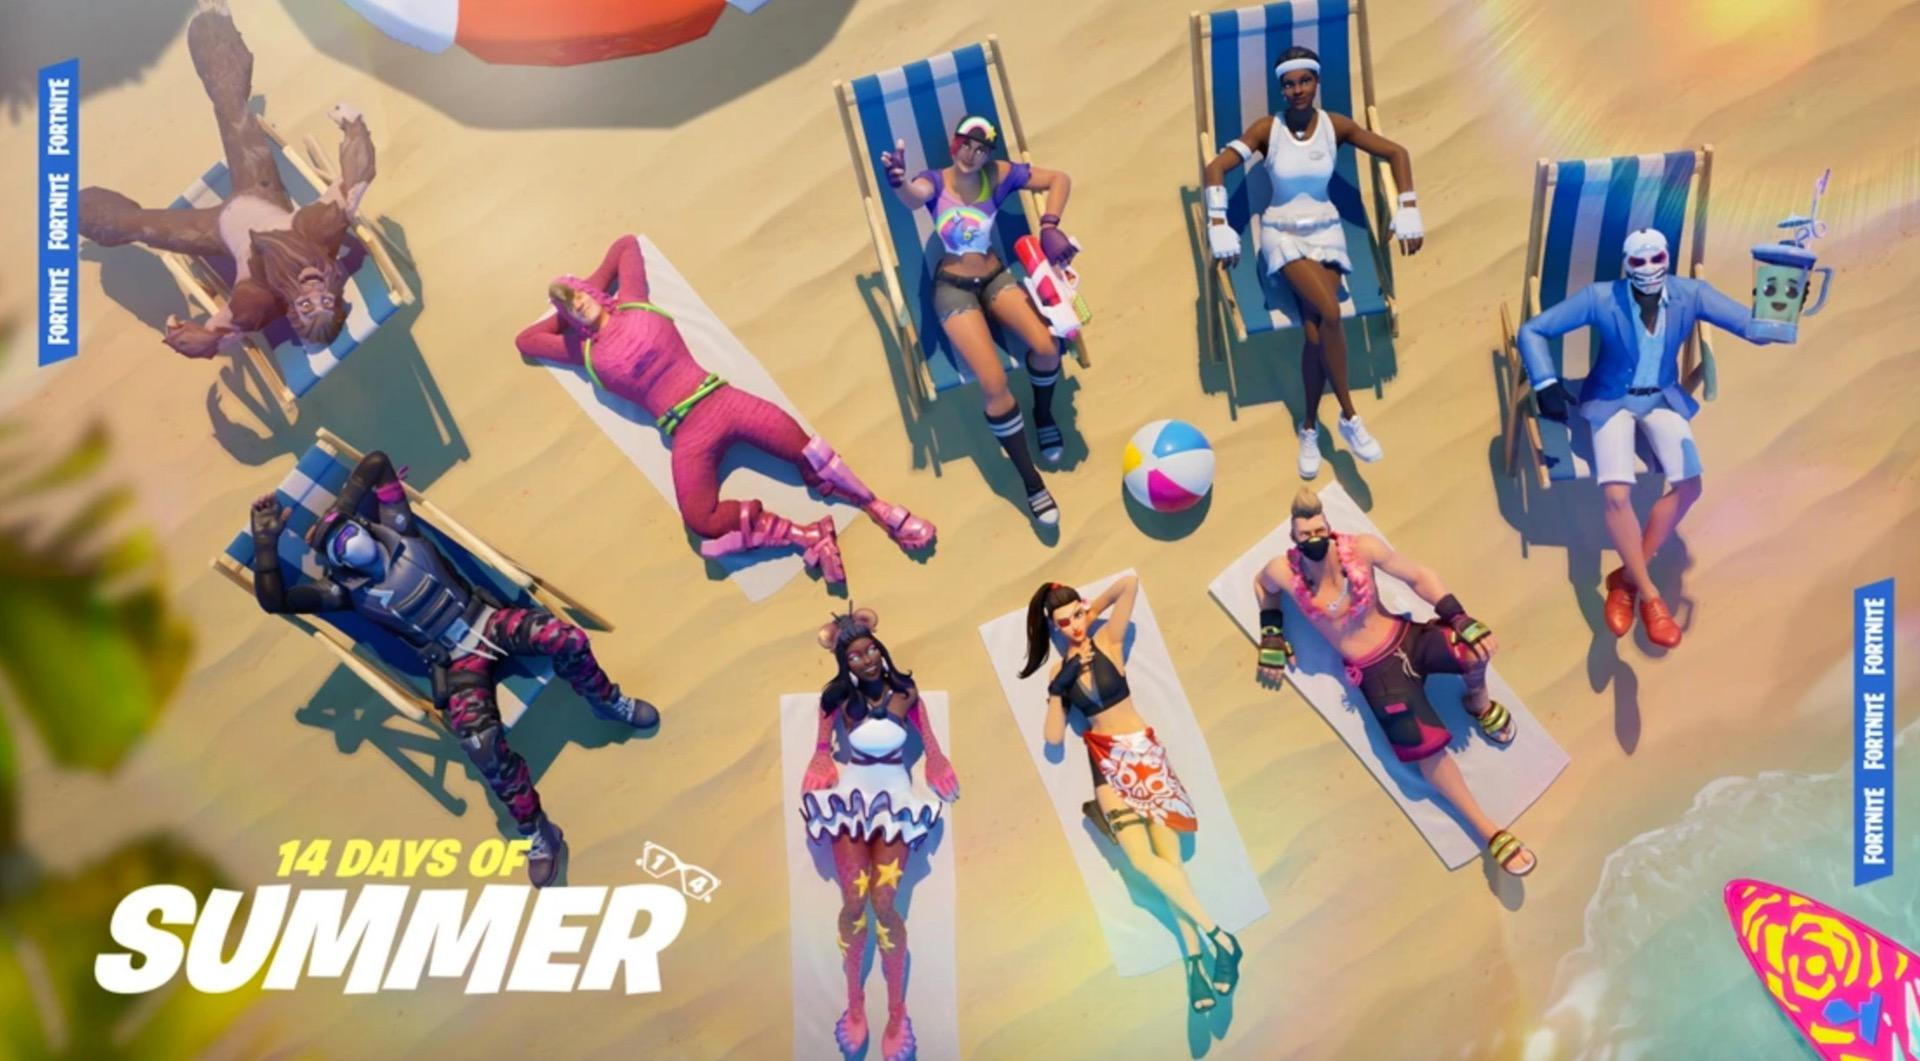 Fortnite 14 days of Summer Challenges and Rewards - Day 1